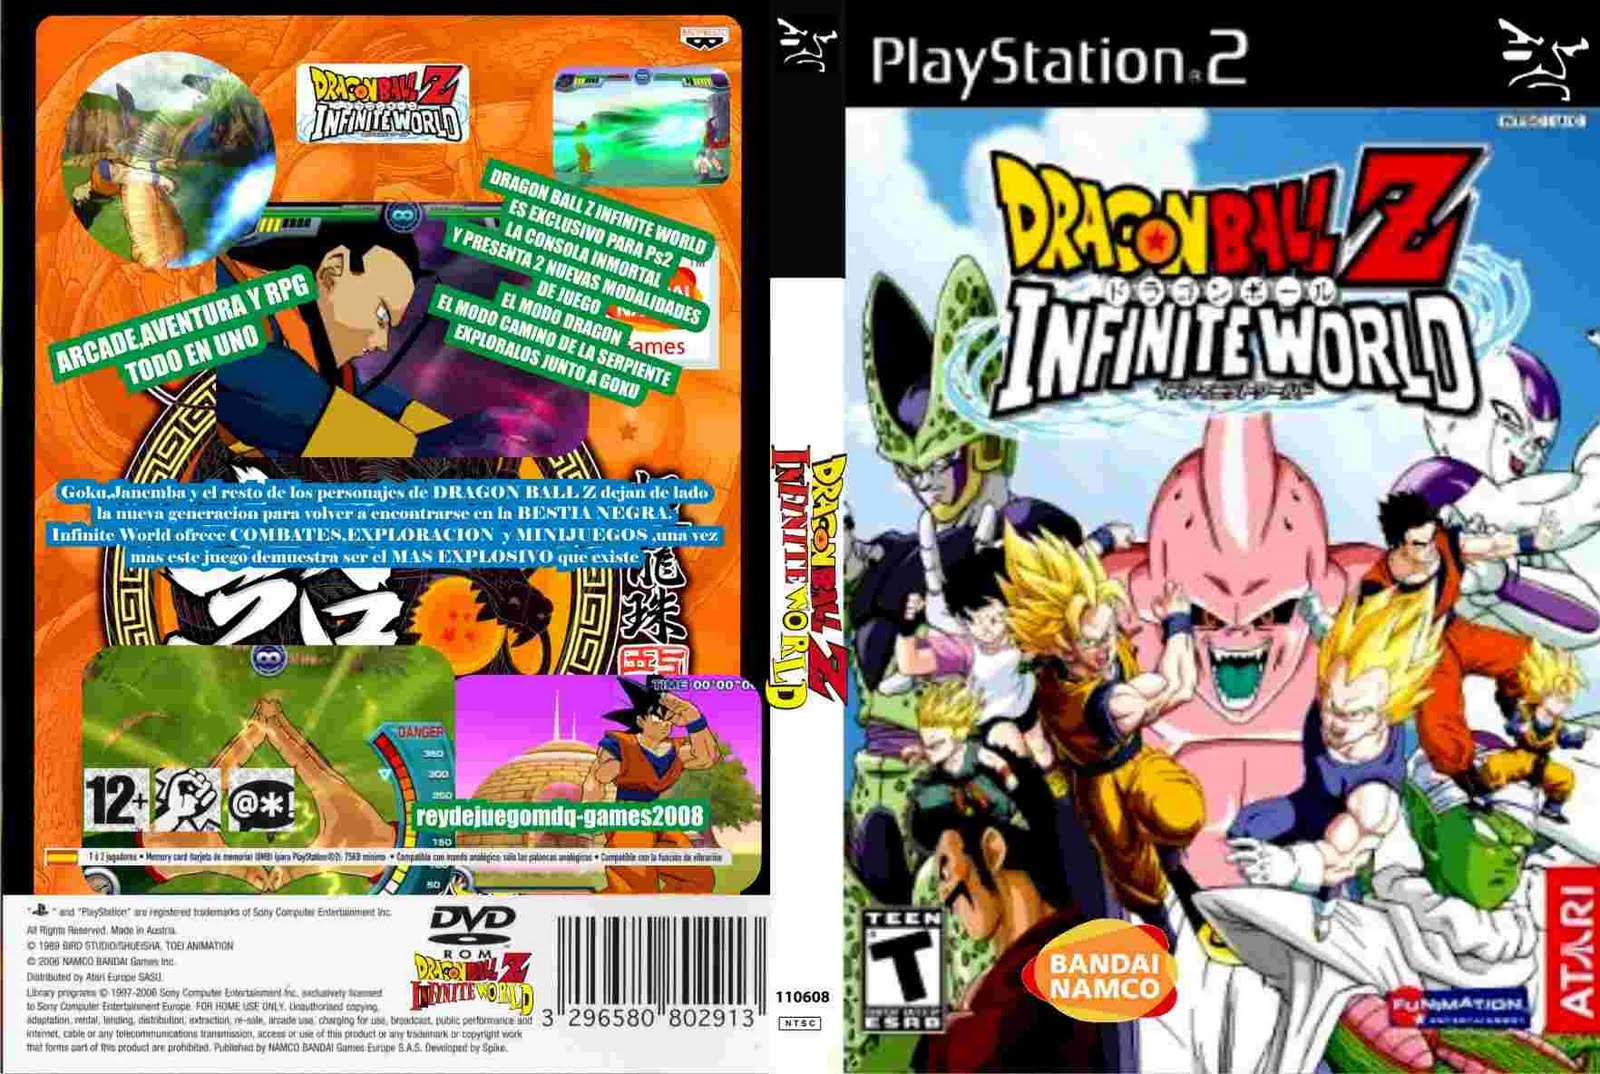 PS2 - dragon ball z infinite world [NTSC\U]